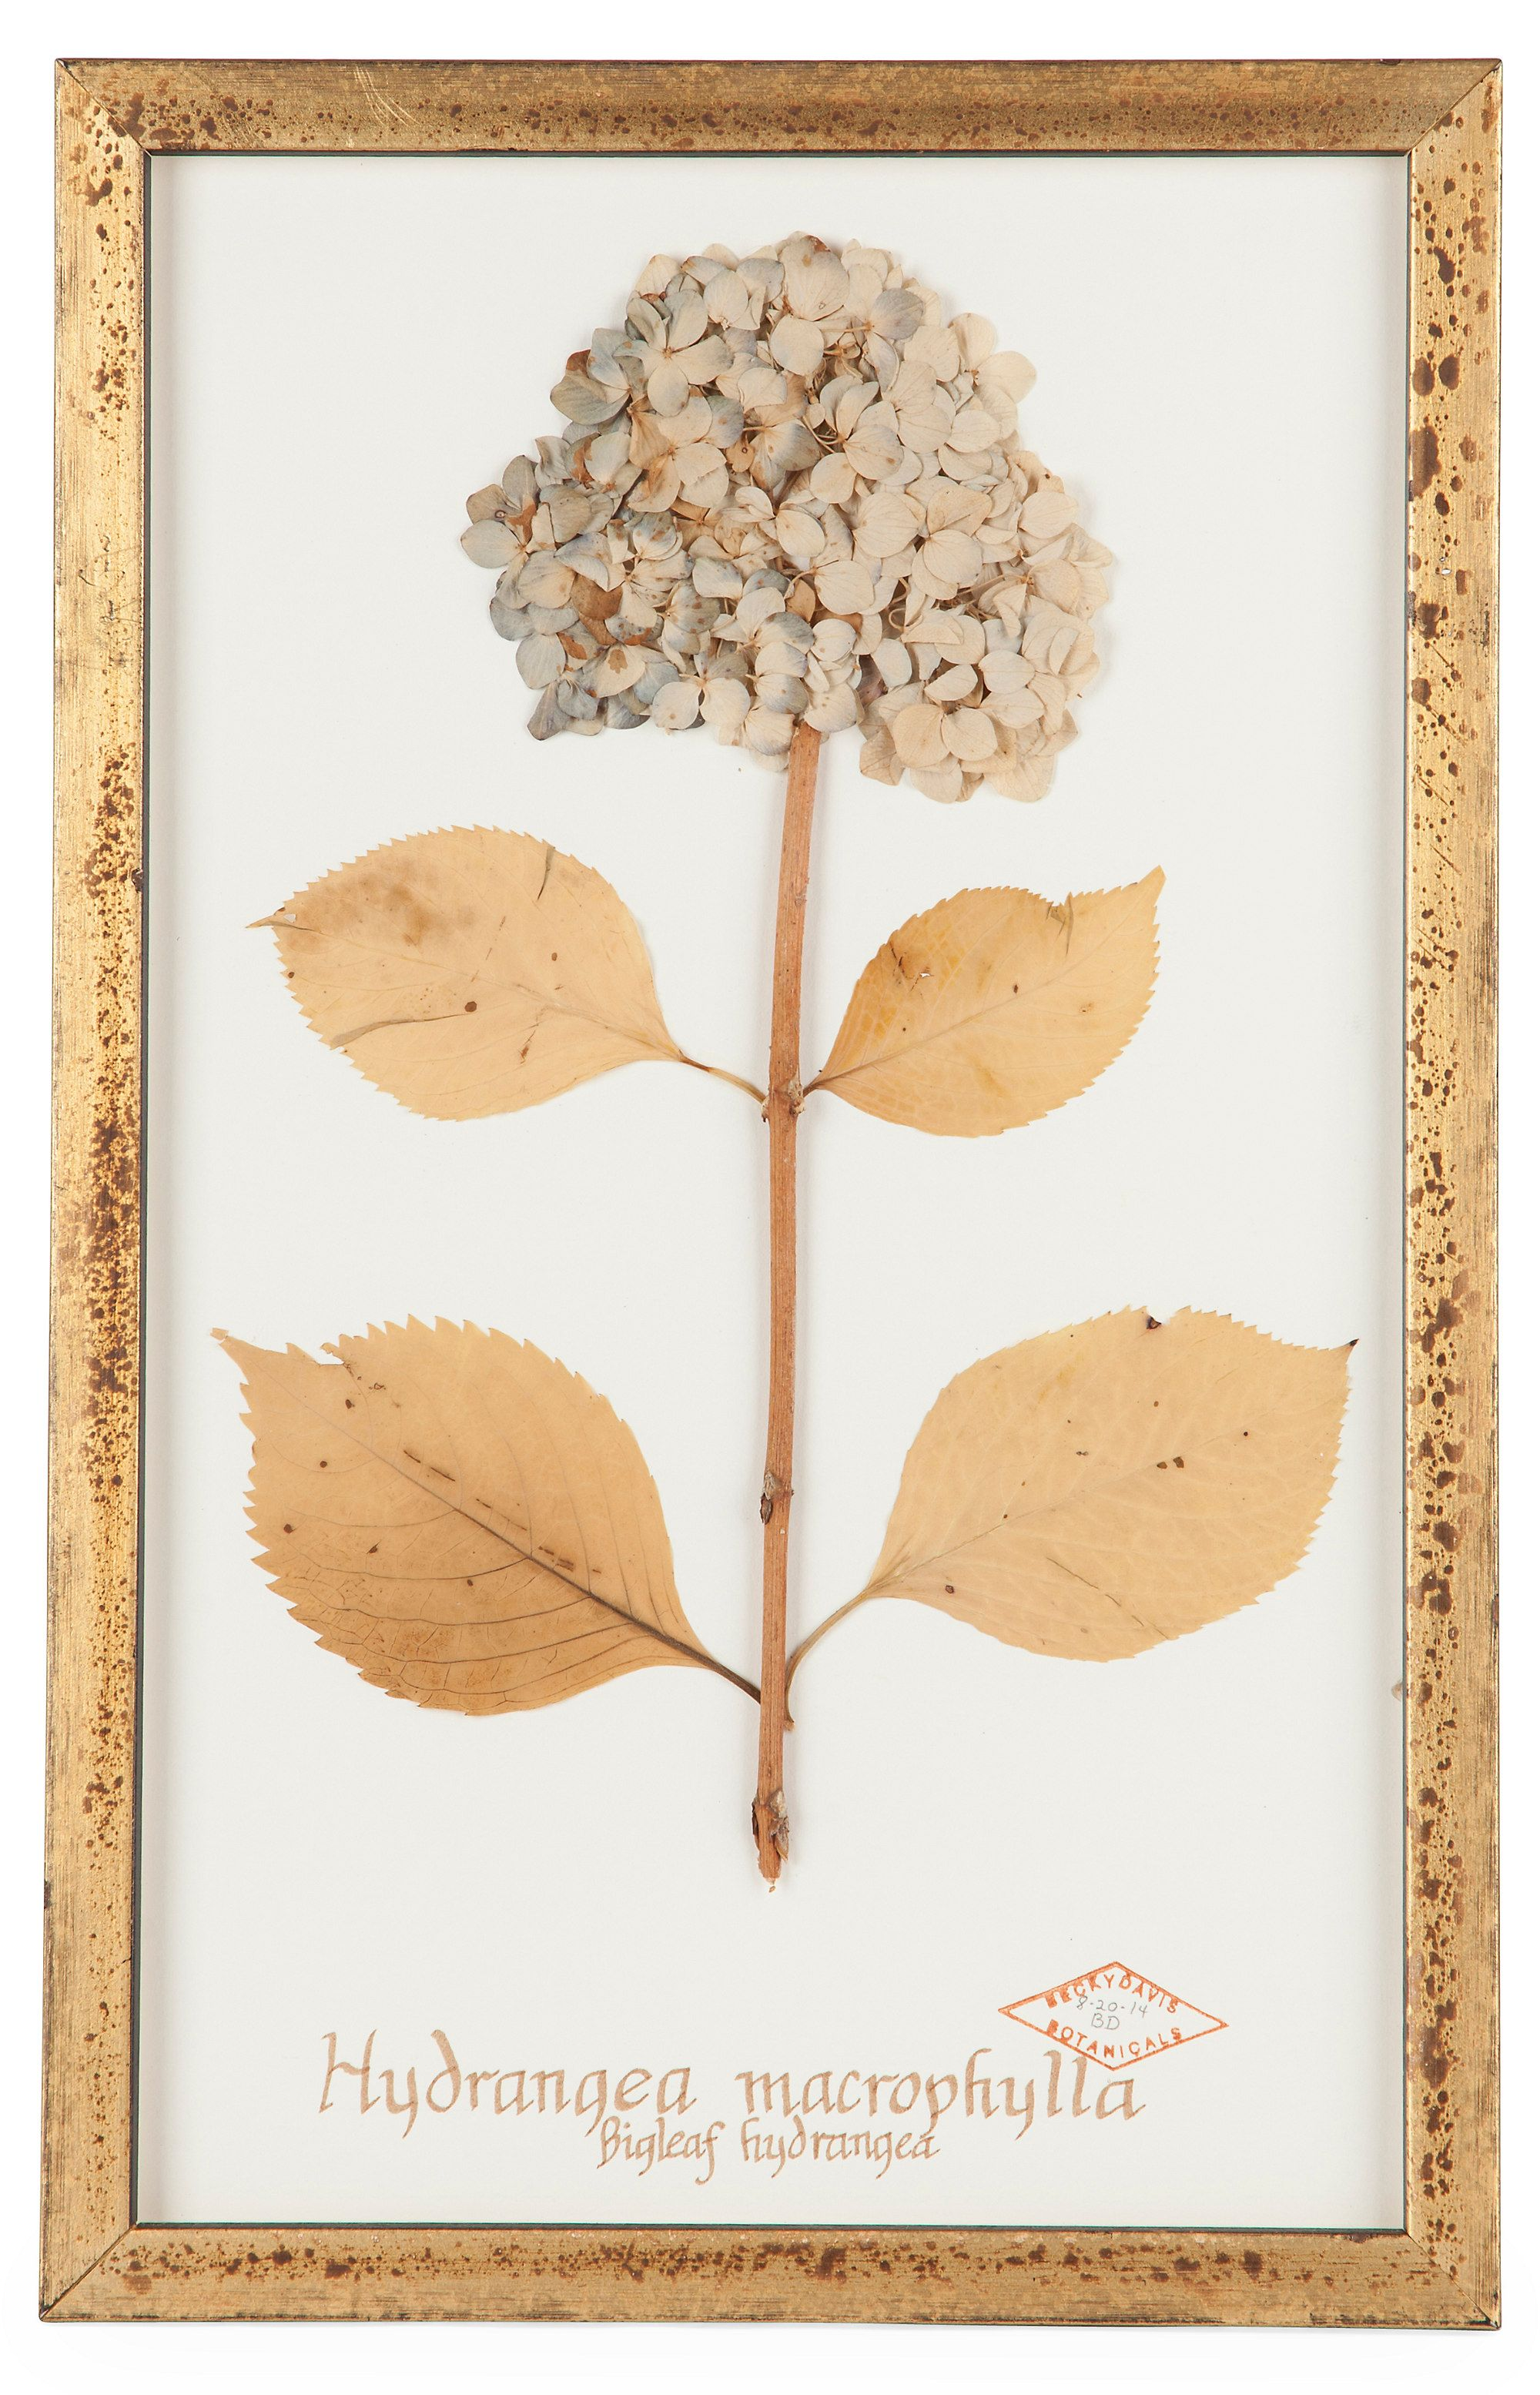 Dried and pressed hydrangea with gold-colored ink calligraphy of the Latin name (Hydrangea macrophylla) below the flower. Displayed in a distressed giltwood frame.